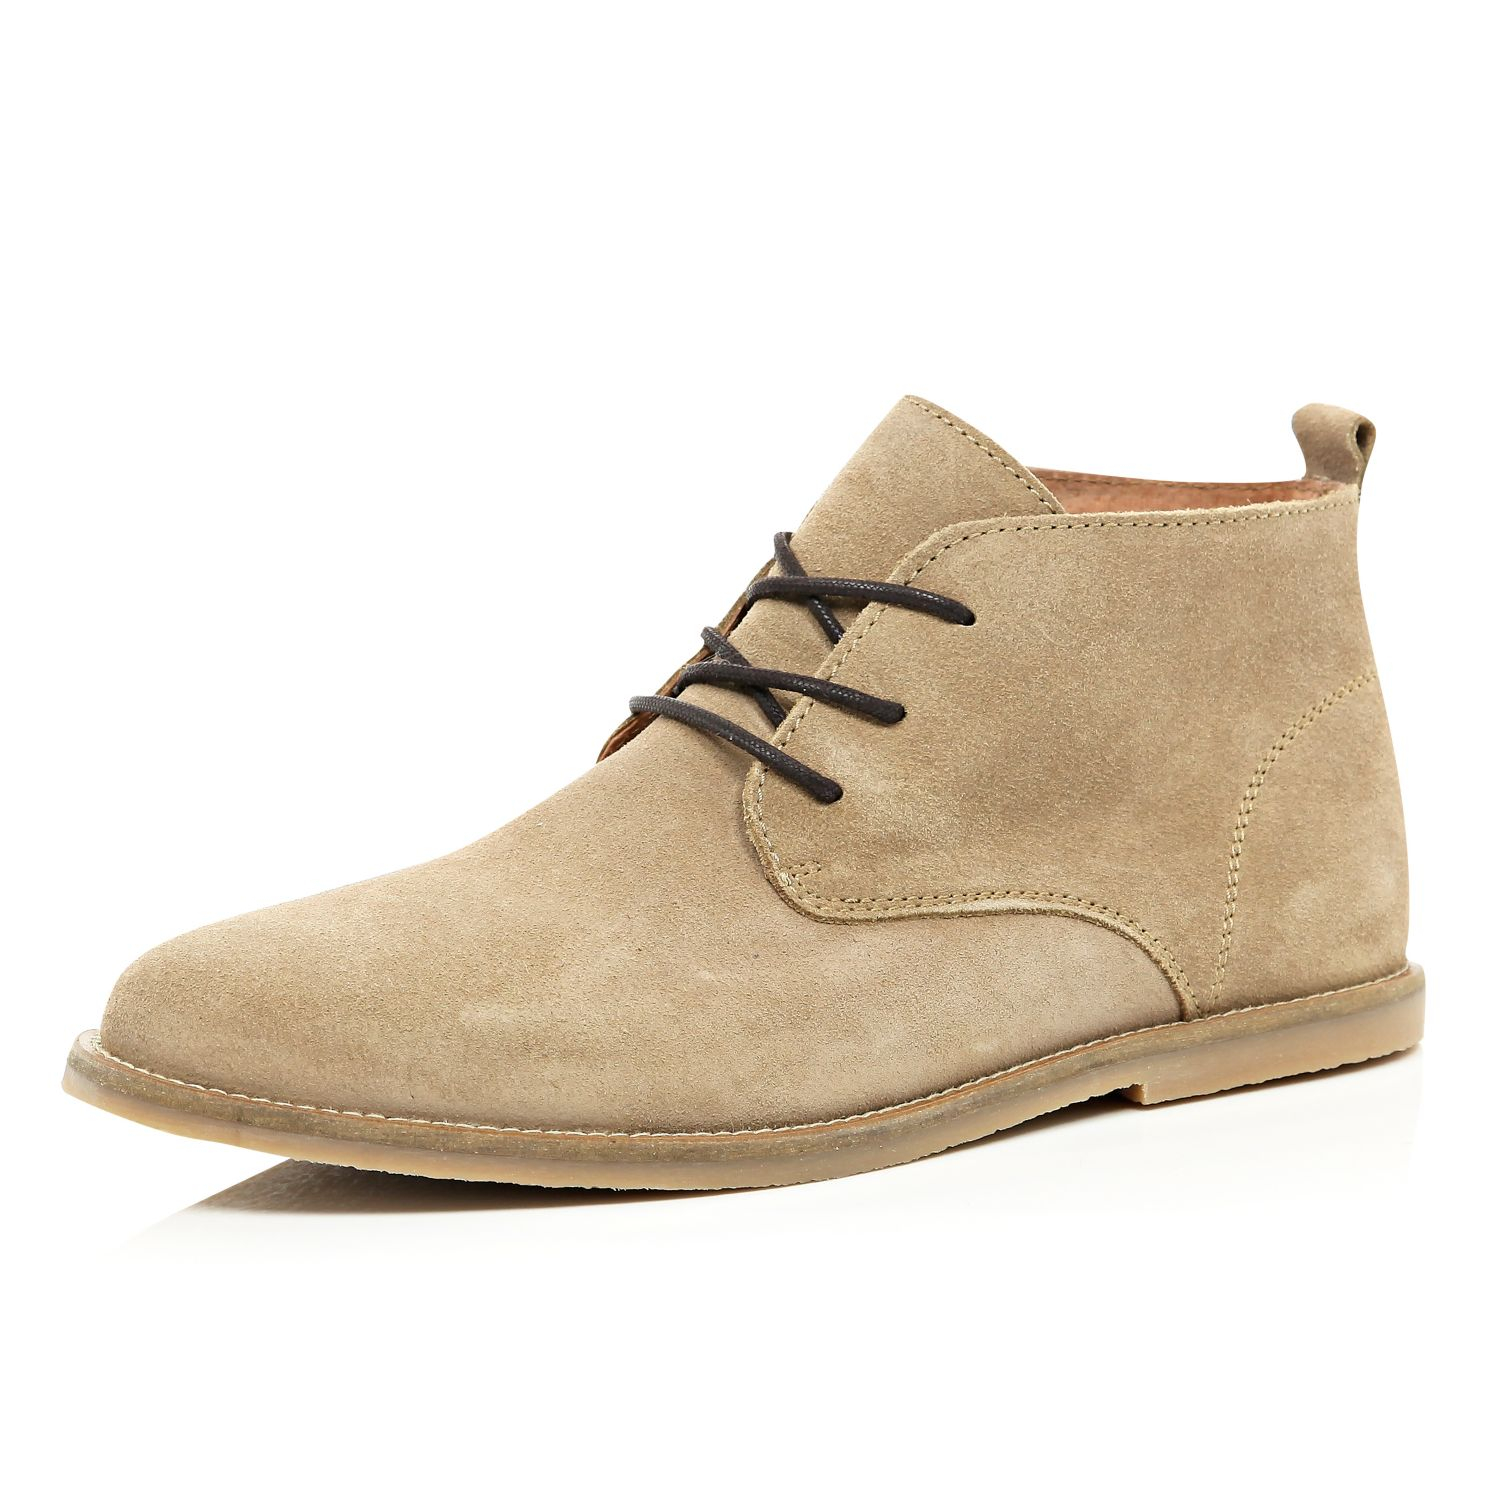 river island suede desert boots in beige for